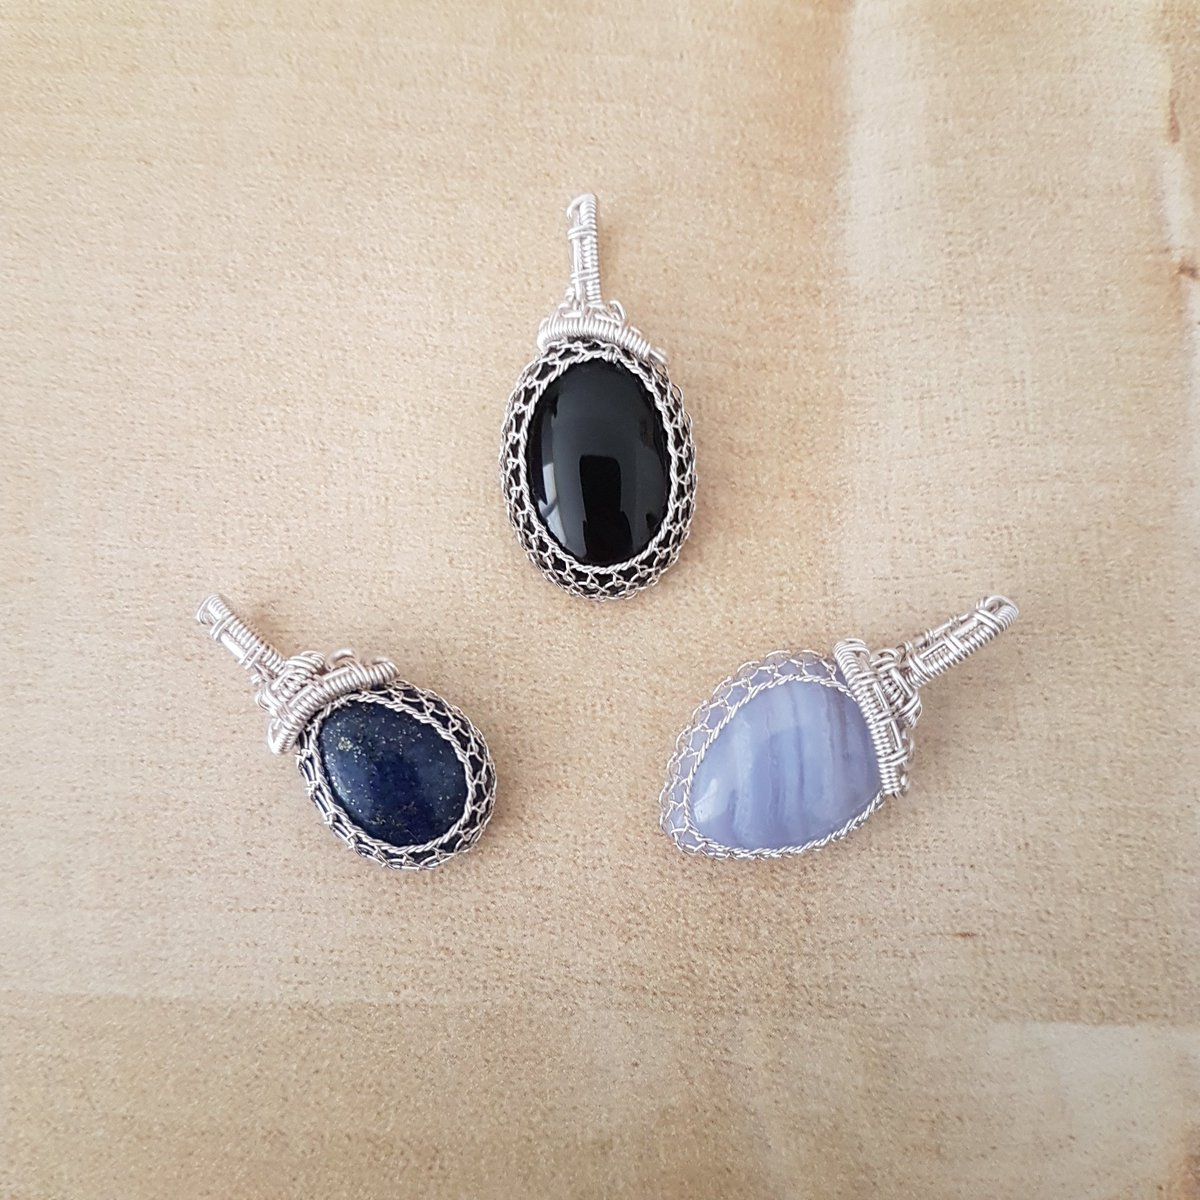 3 small wire wrapped stone pendants